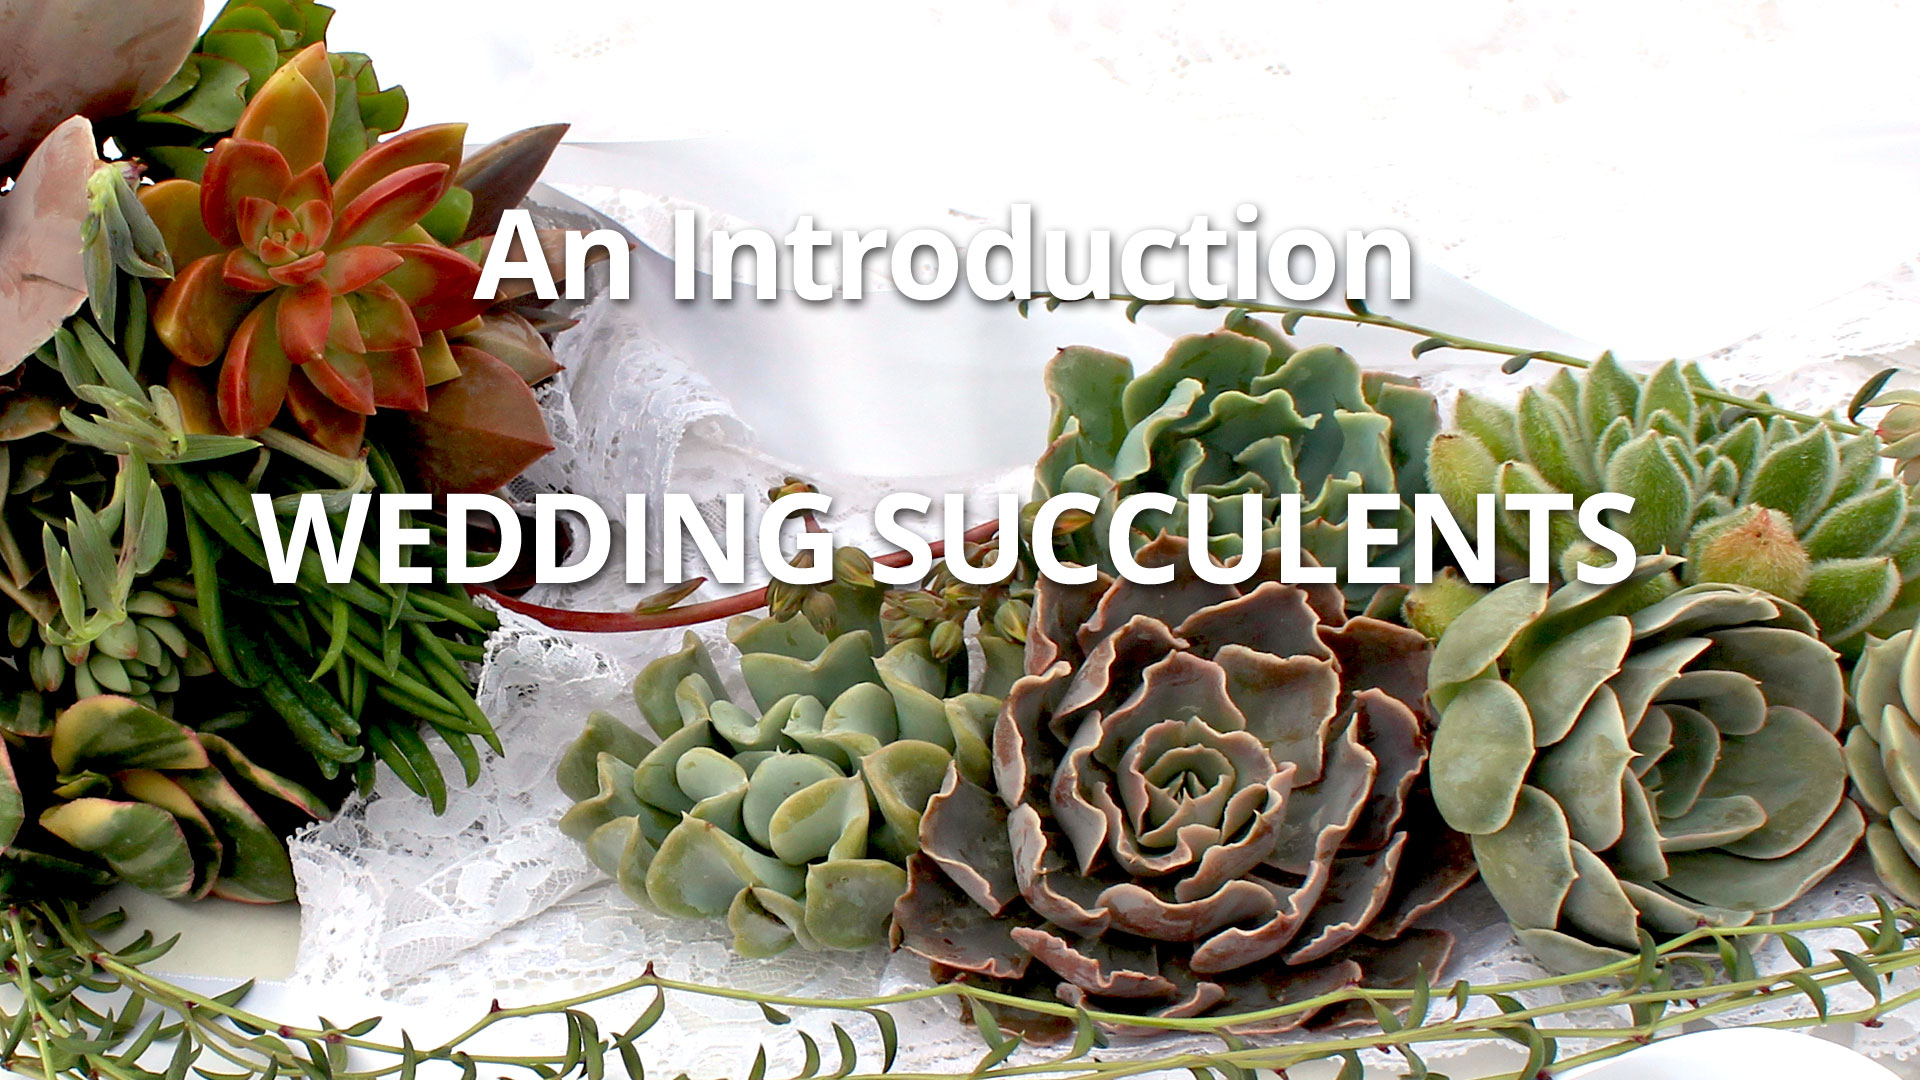 Wedding Succulents - An Introduction - Mountain Crest Gardens